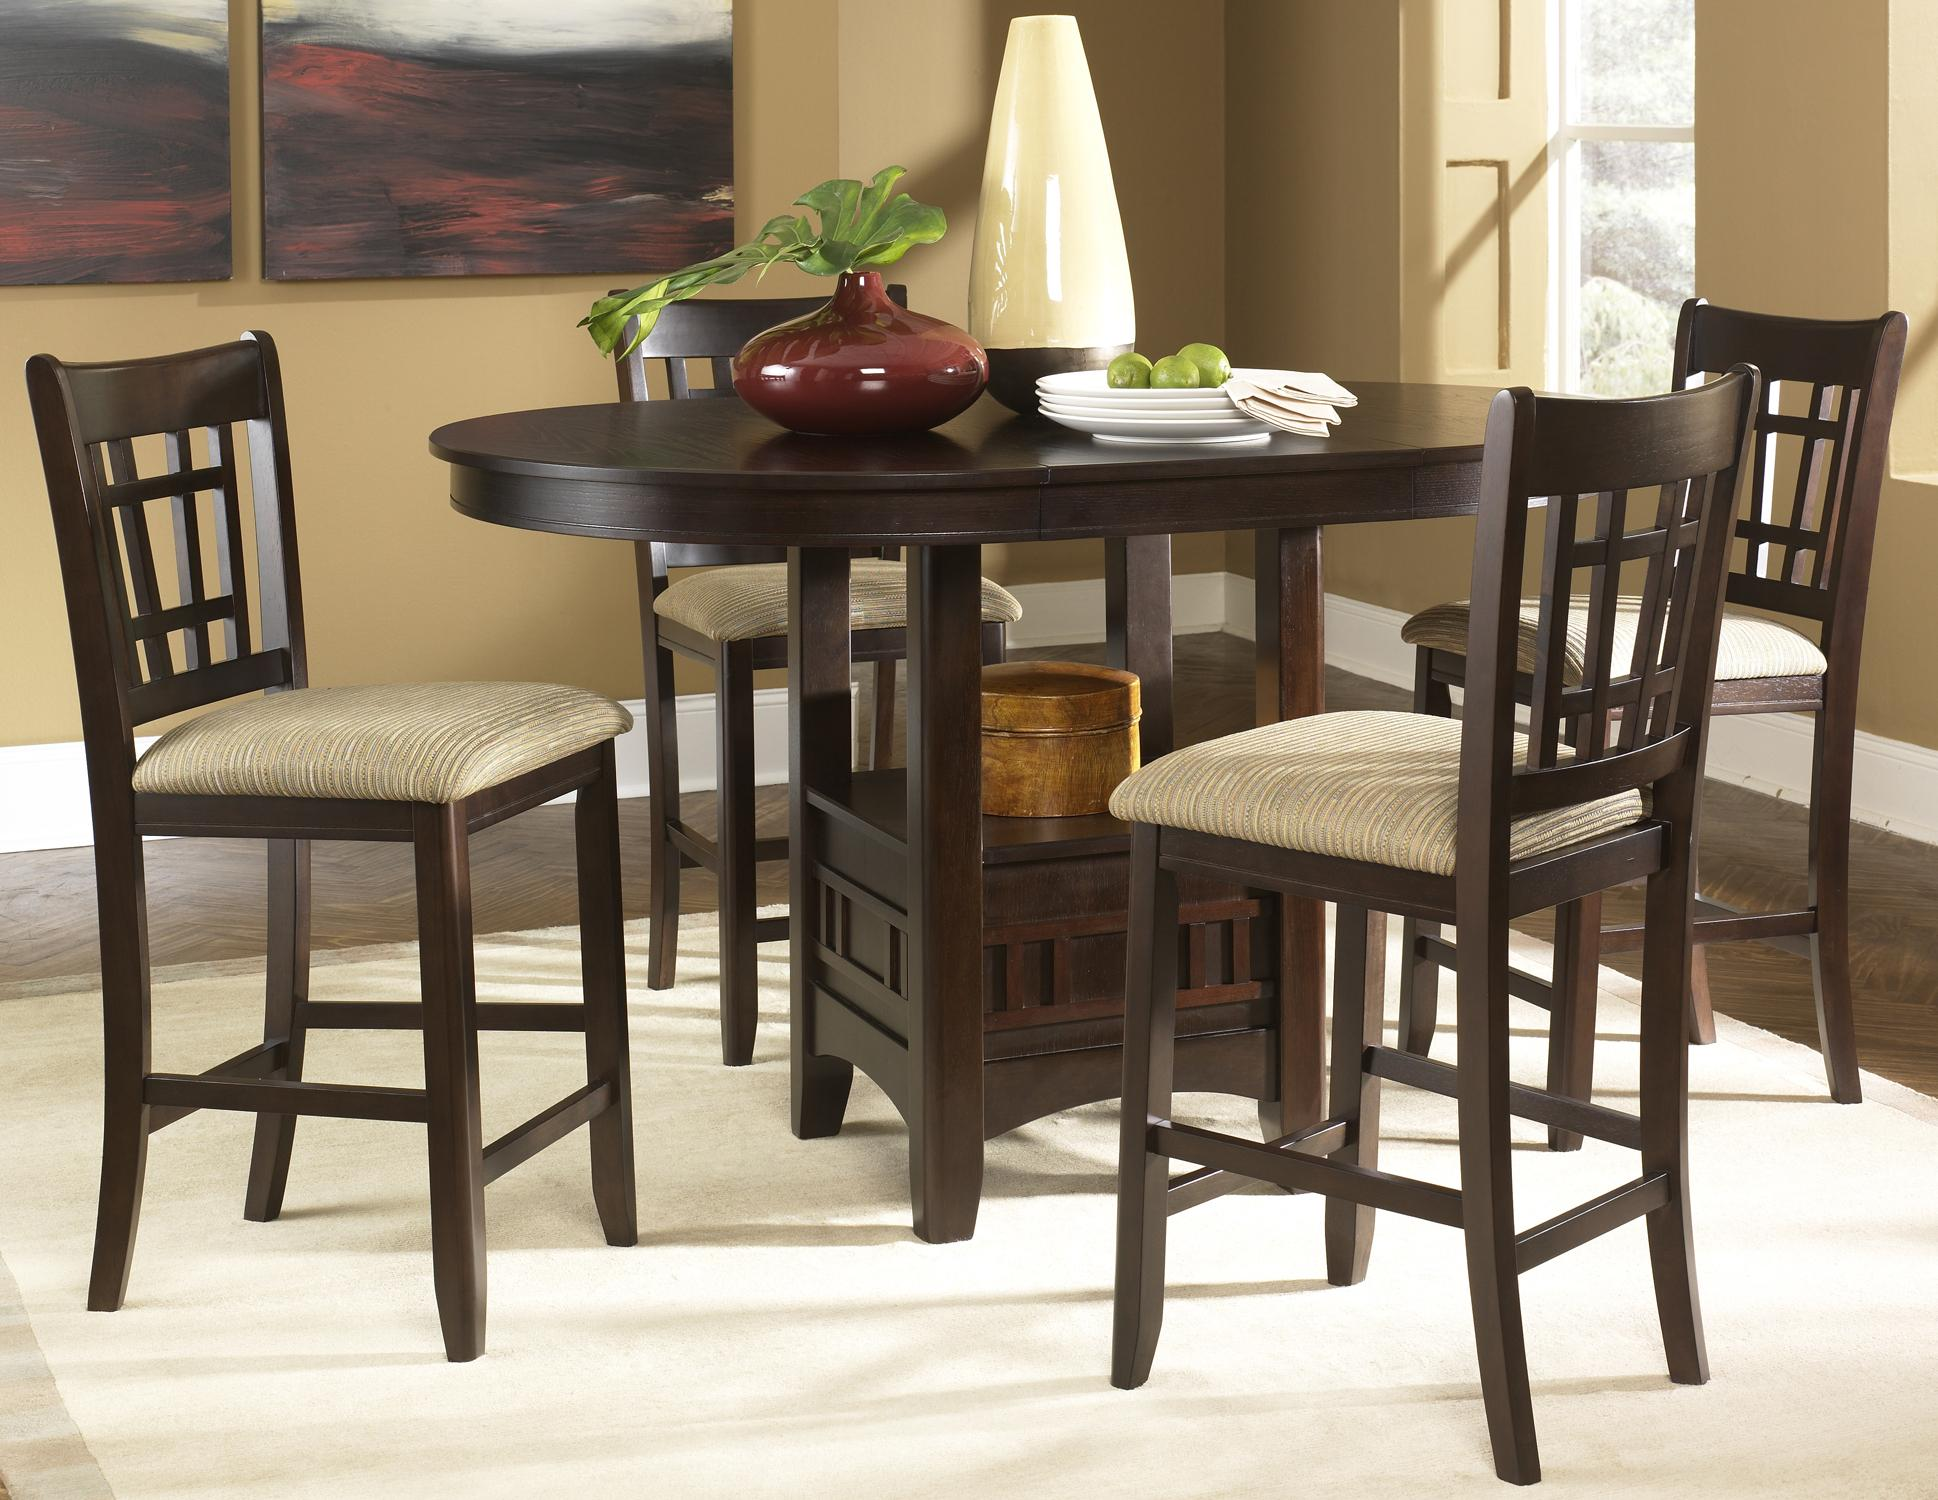 Santa Rosa Oval Pub Table & 24 Inch Upholstered Bar Stool Set ...